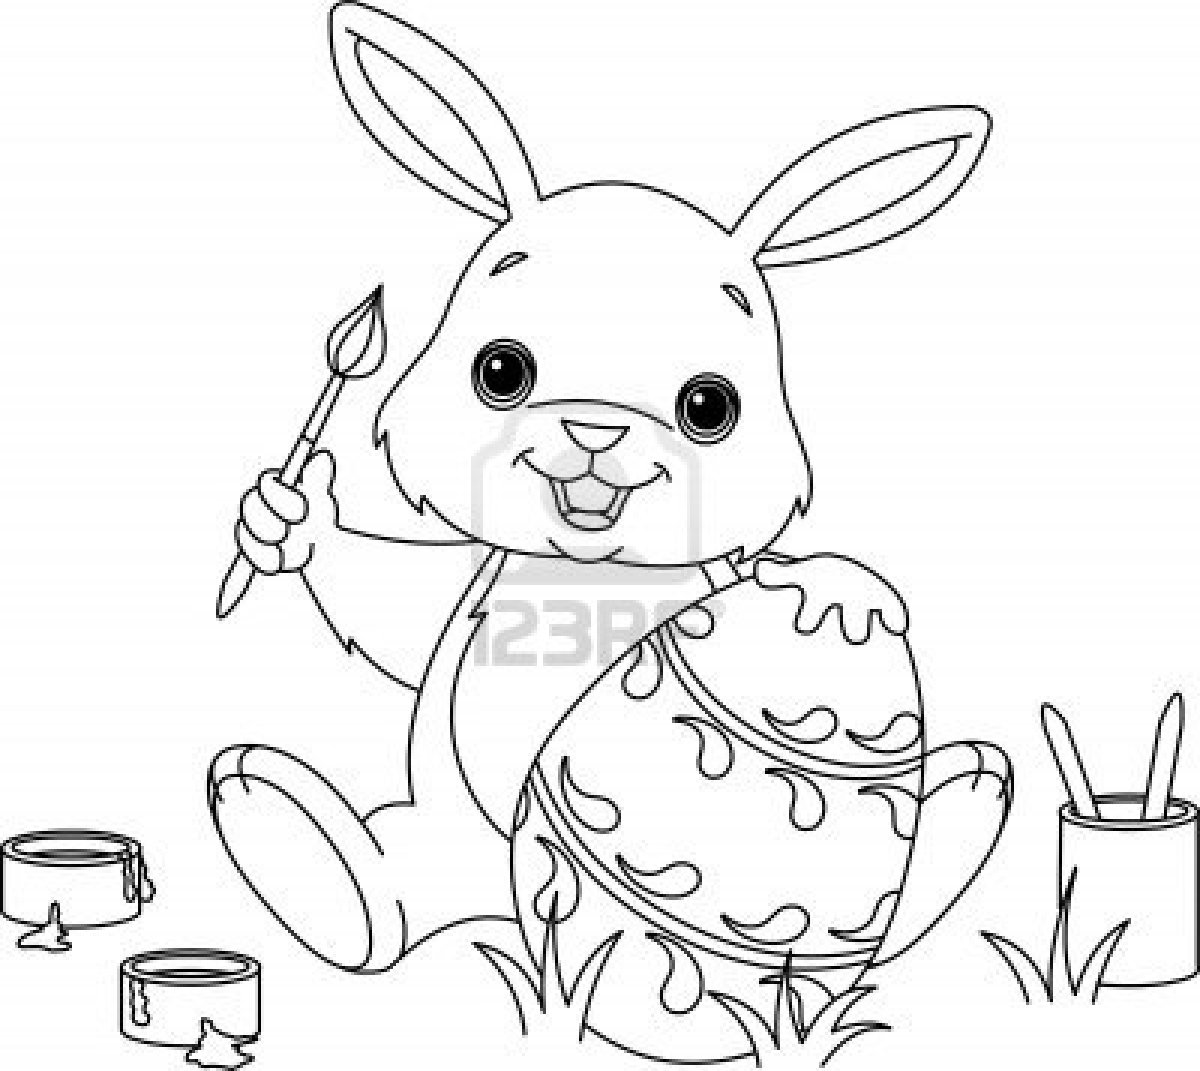 This is an image of Free Printable Easter Bunny Coloring Pages pertaining to animal